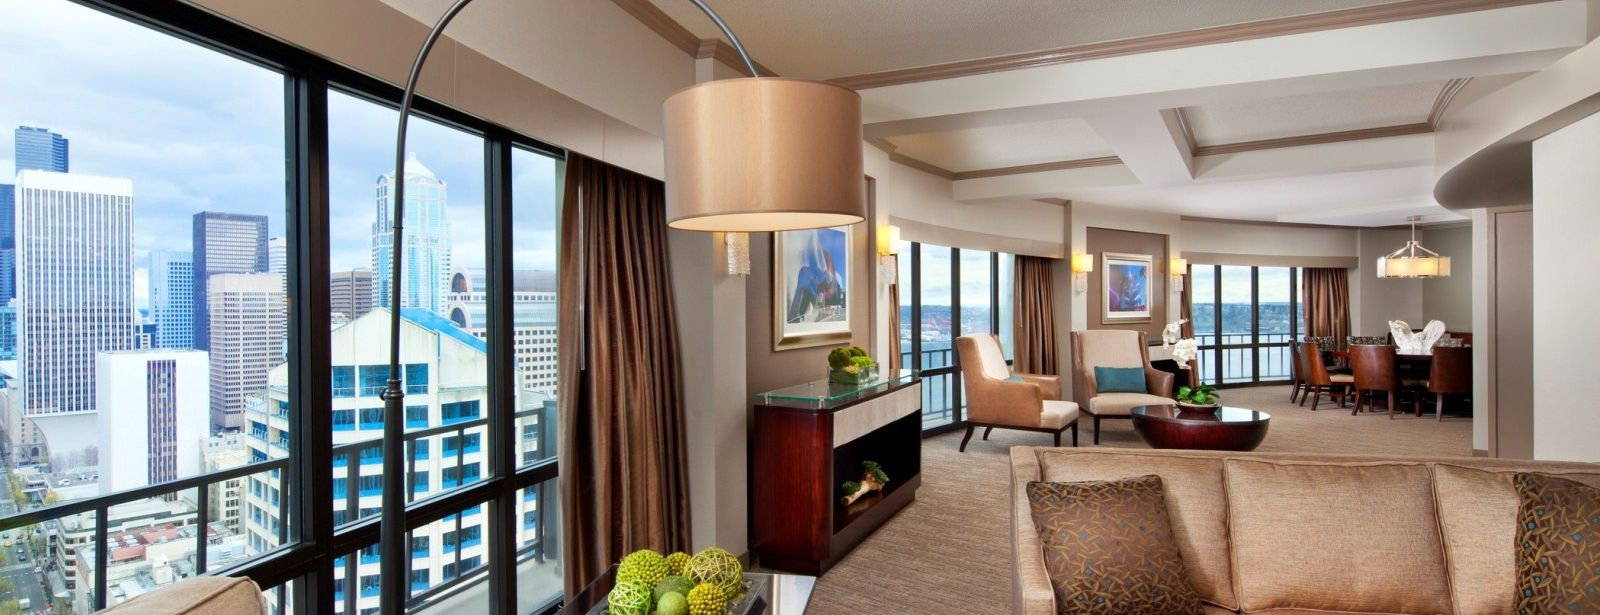 The Westin Seattle - Luxury Suites